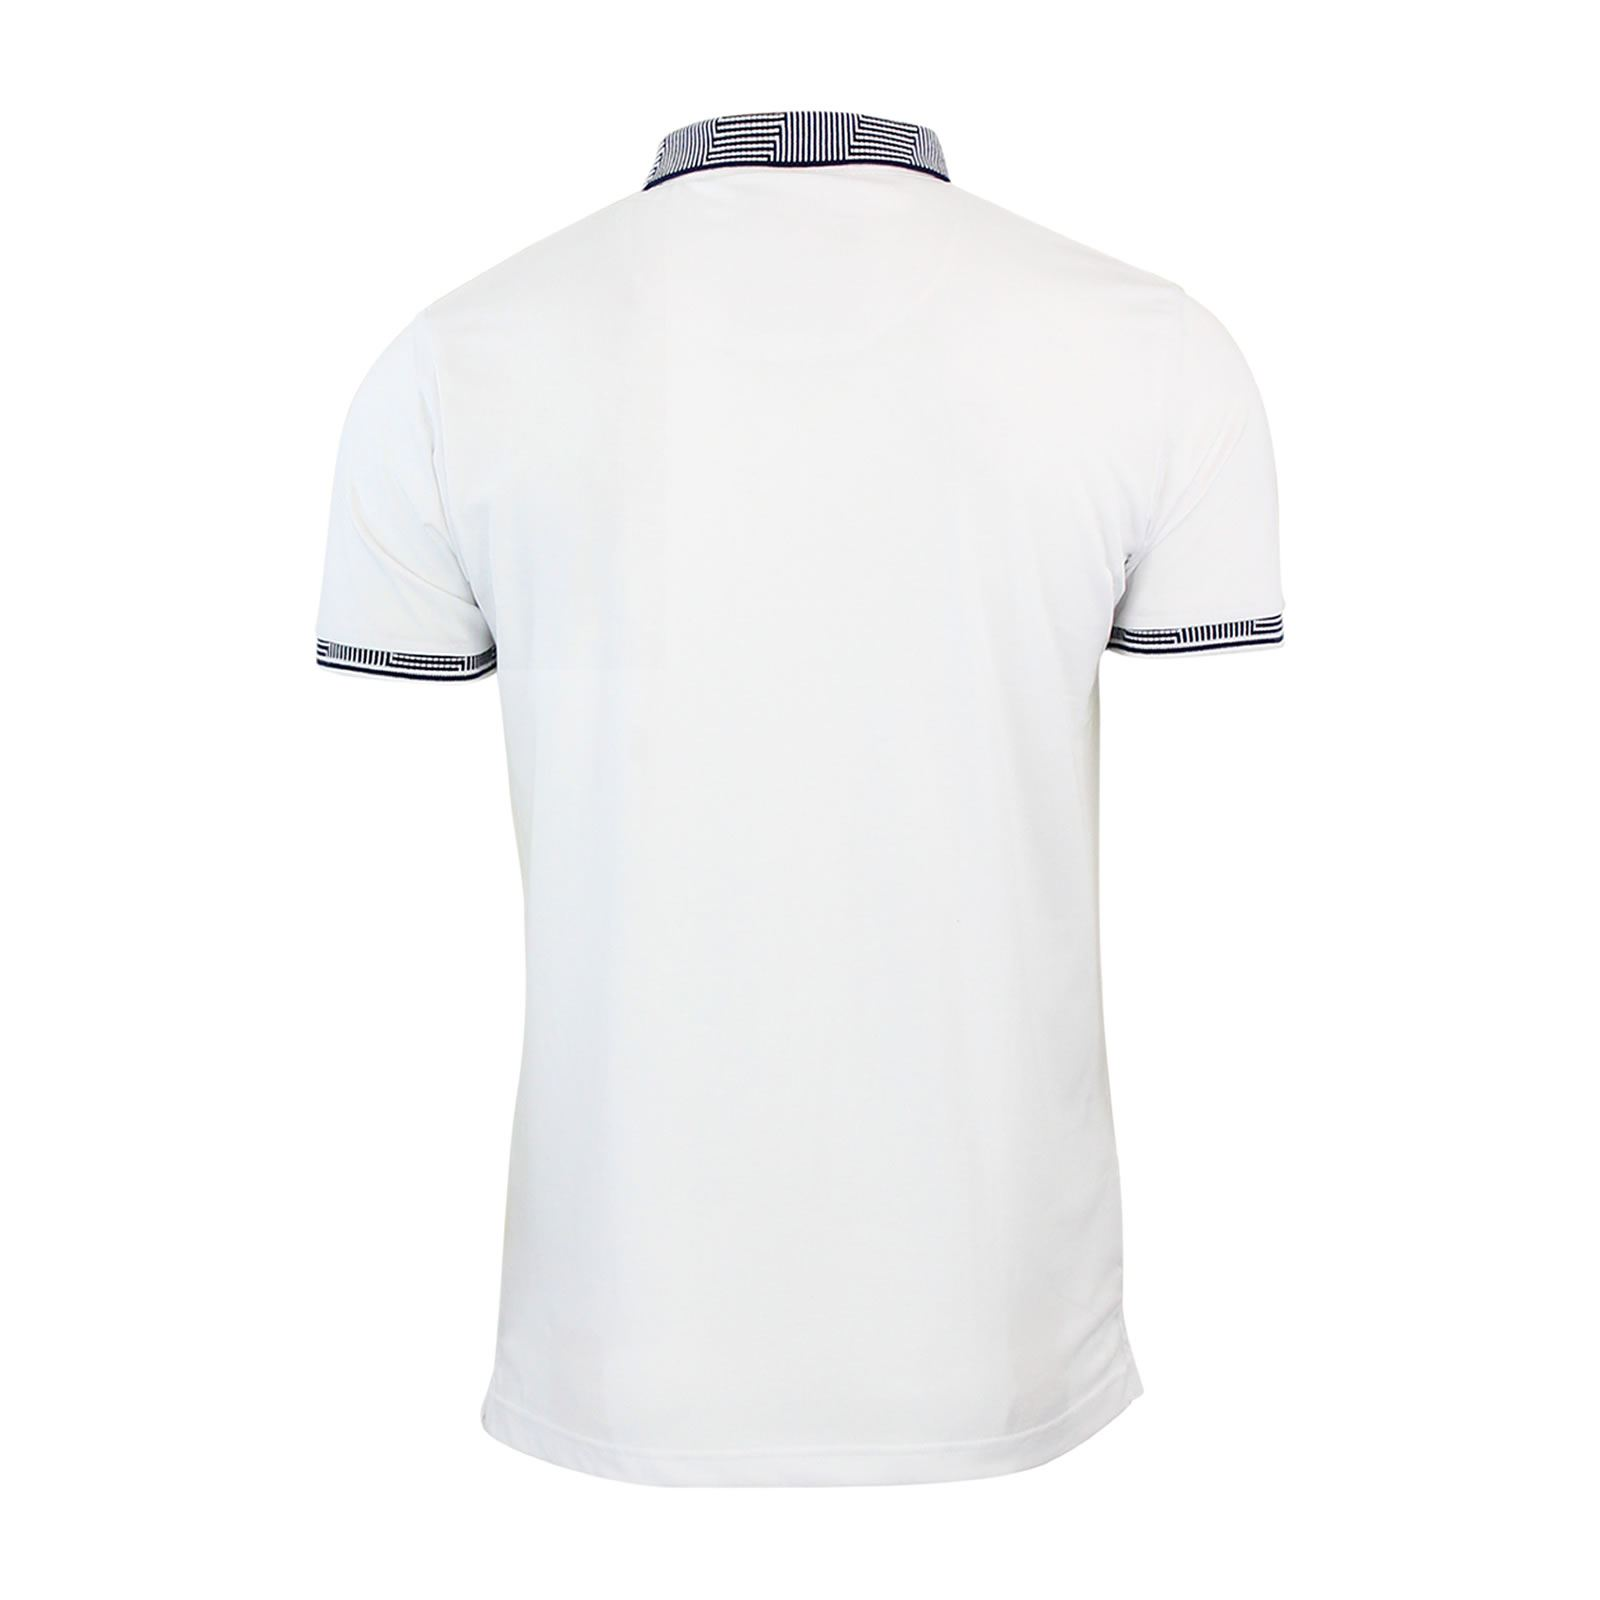 Brave-Soul-Glover-Mens-Polo-T-Shirt-Cotton-Collared-Short-Sleeve-Casual-Top thumbnail 53